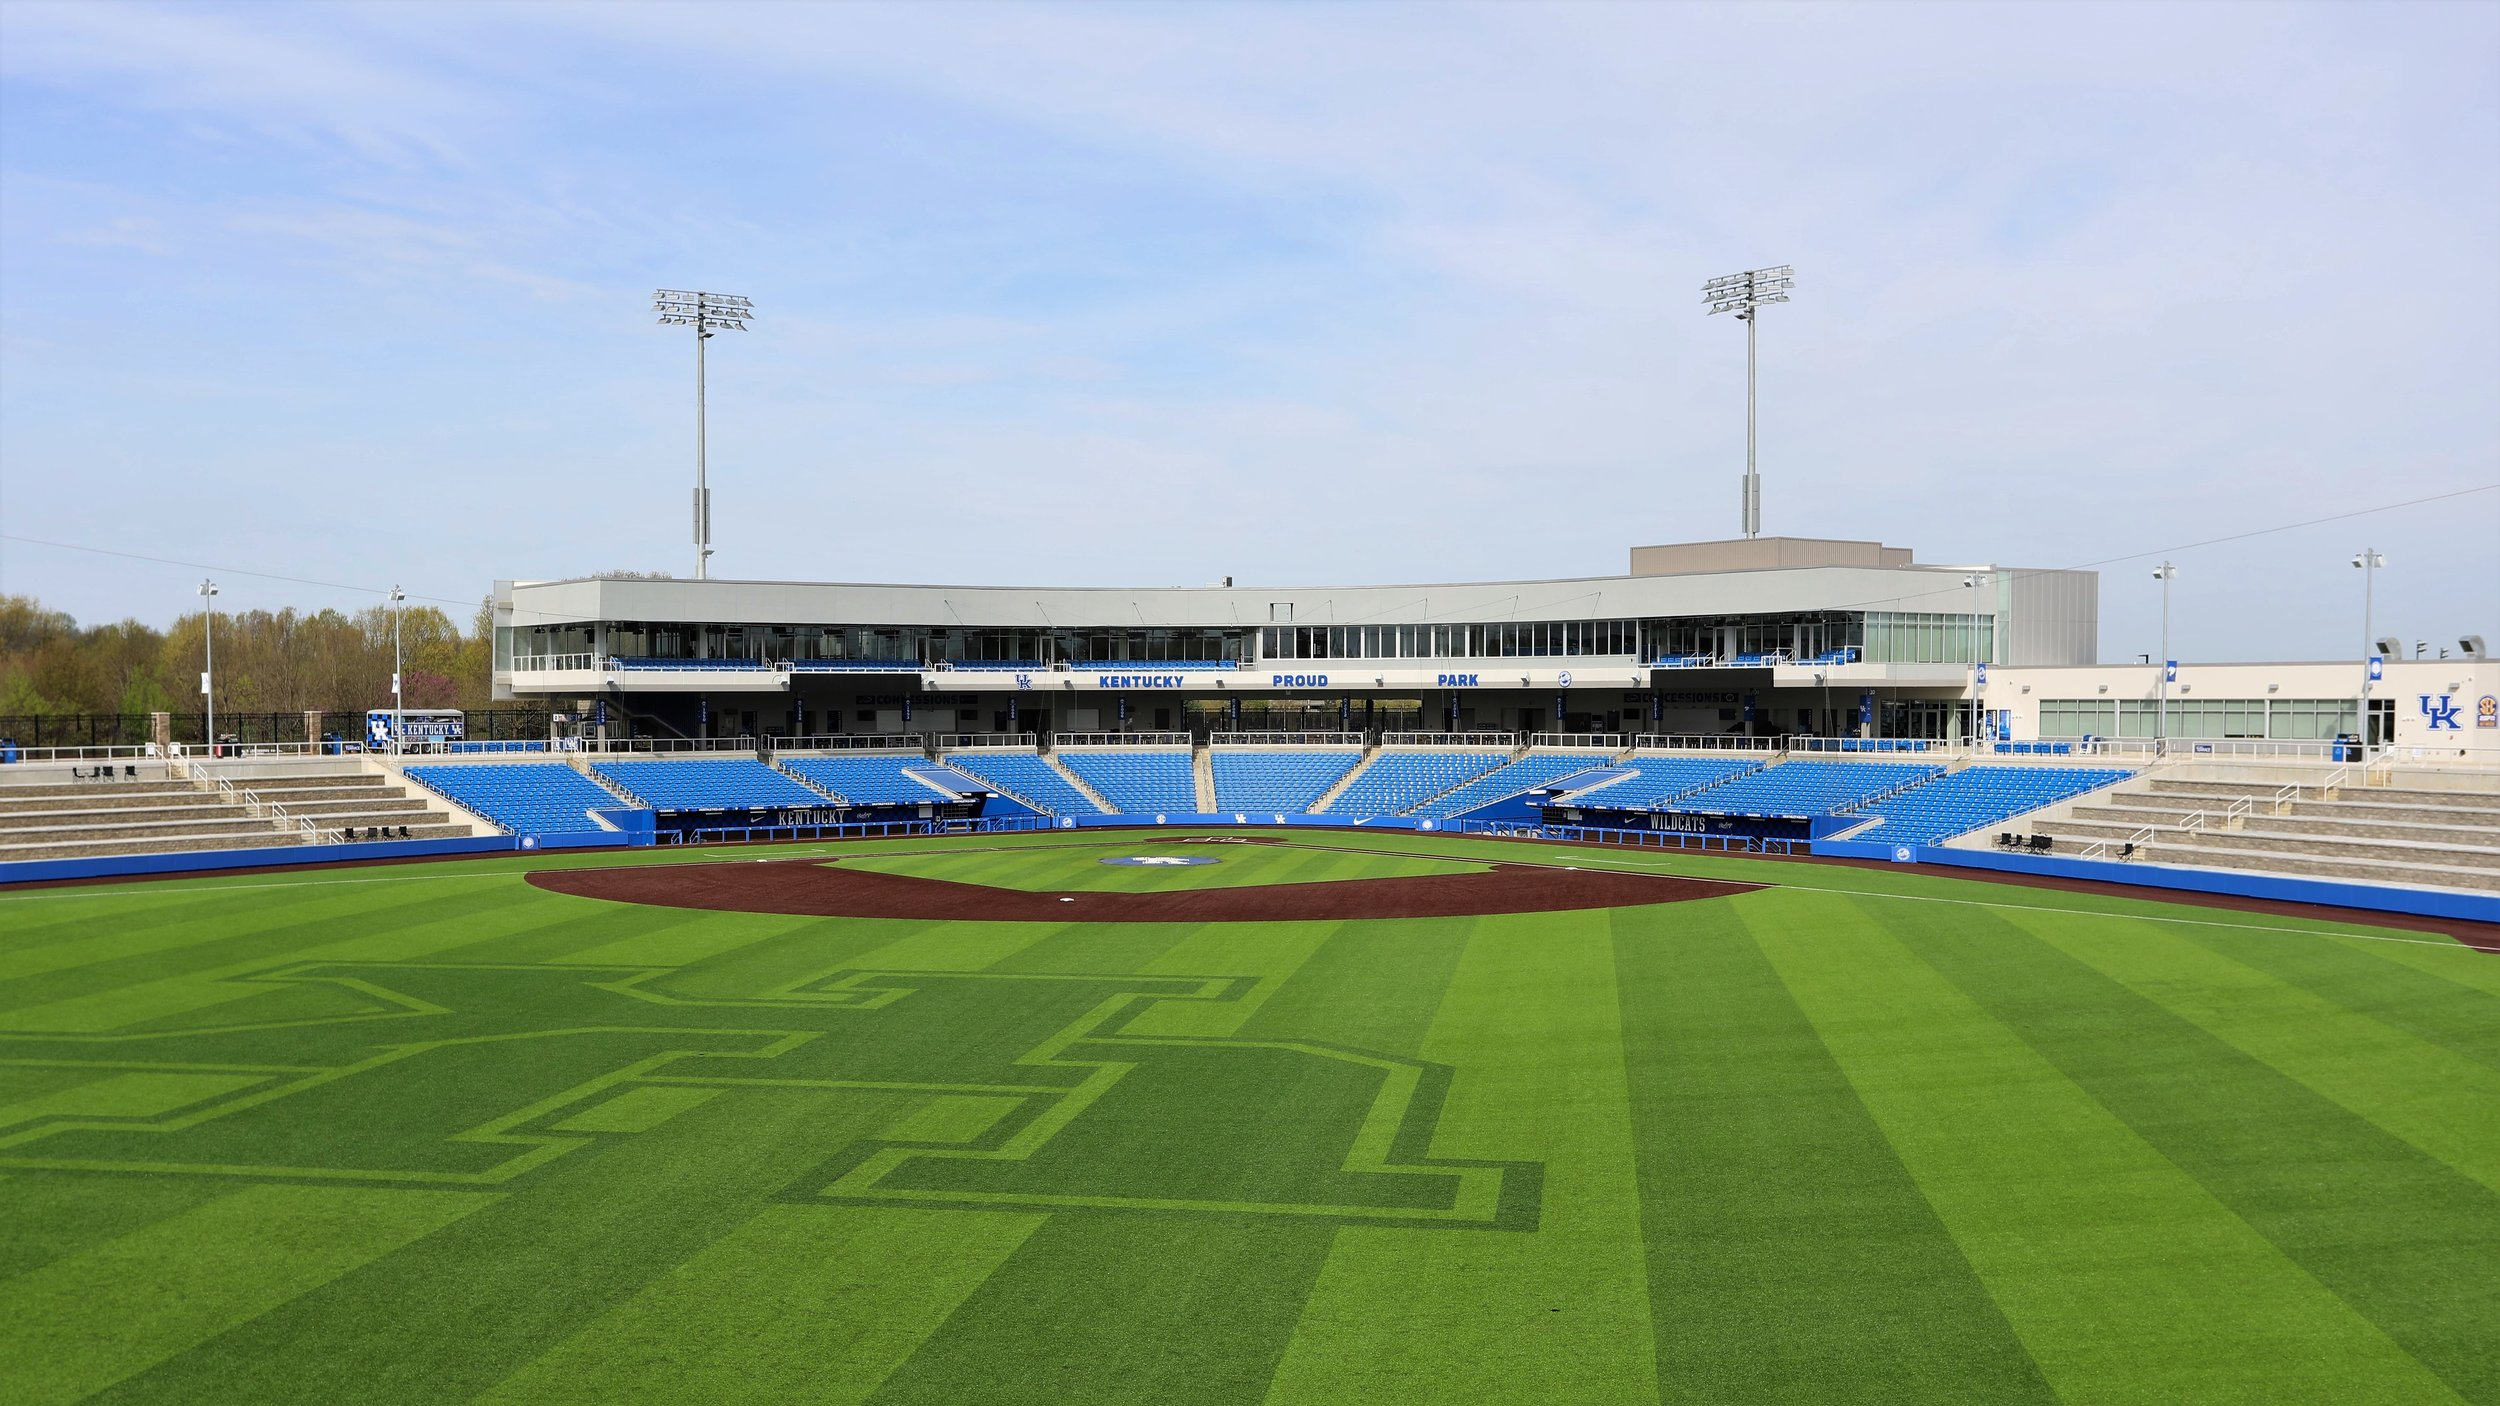 UK Baseball Stadium (1).JPG